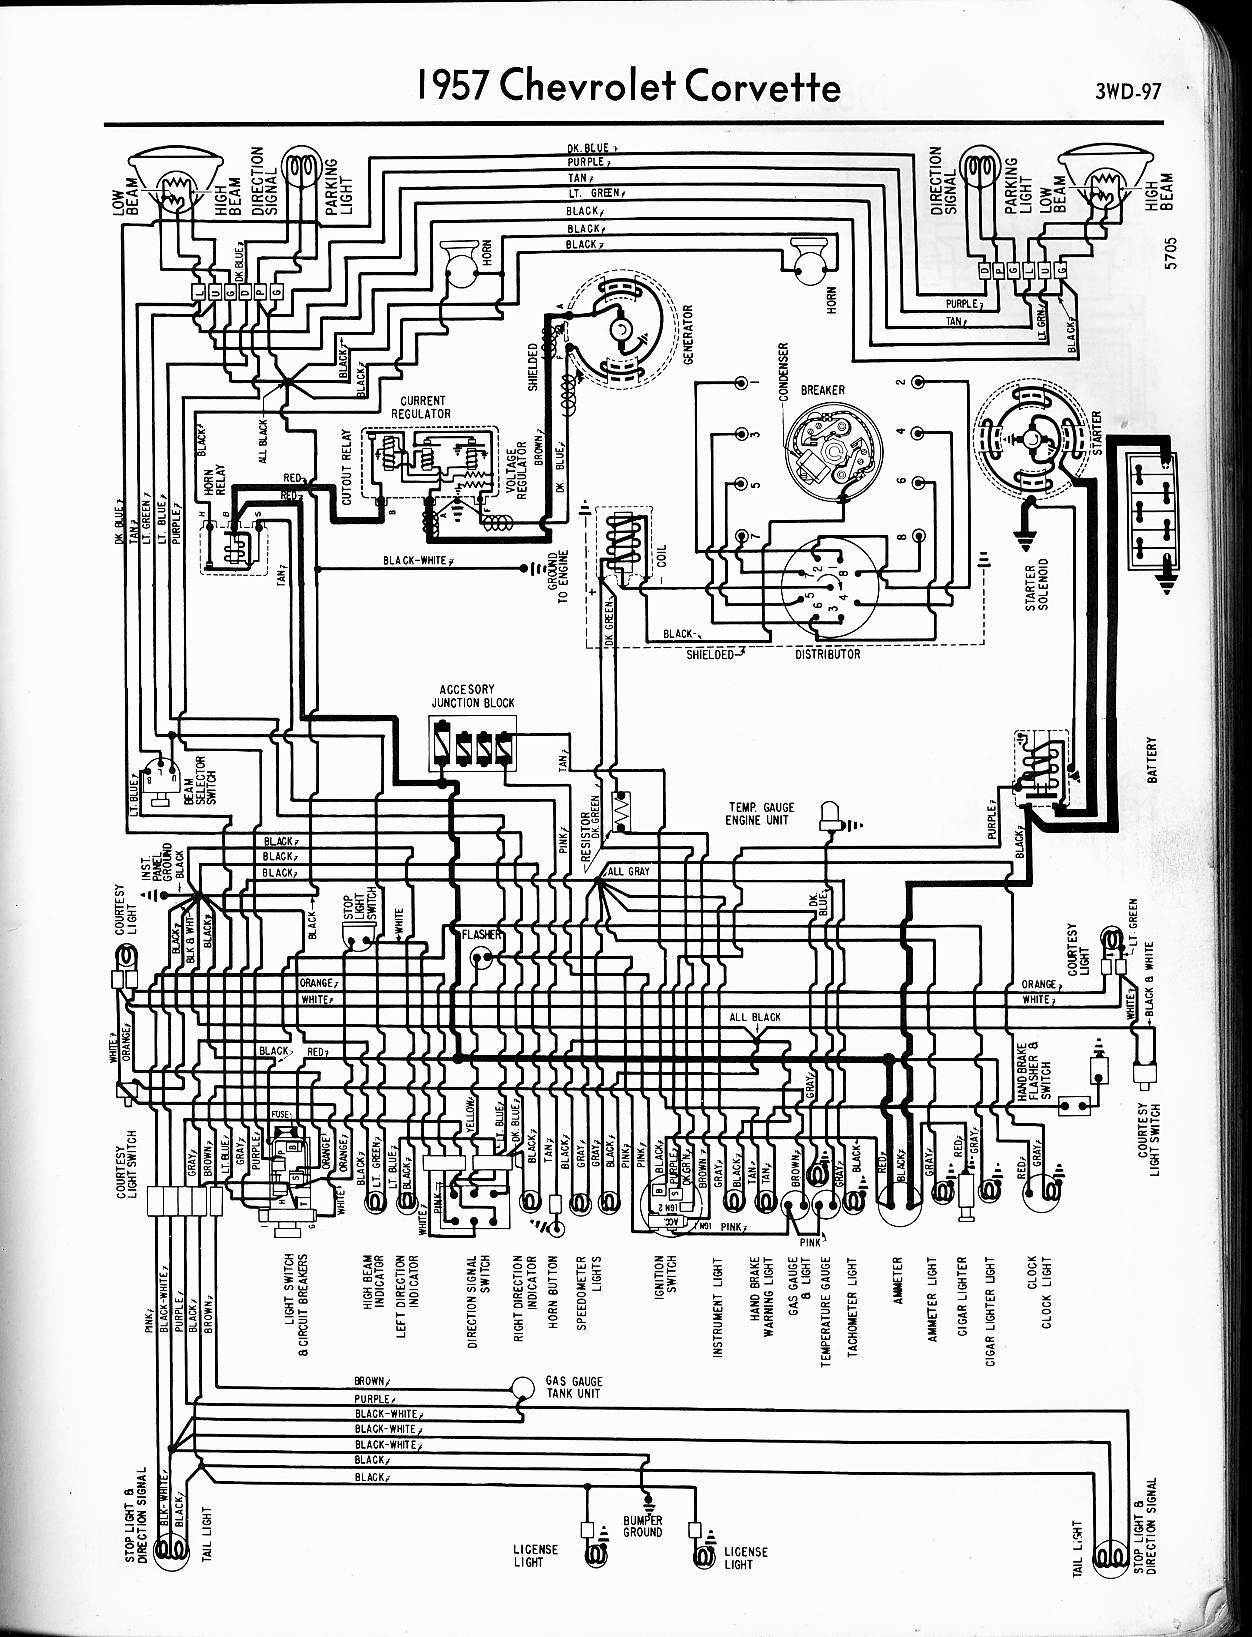 MWireChev57_3WD 097 57 65 chevy wiring diagrams chevrolet wiring harness at aneh.co